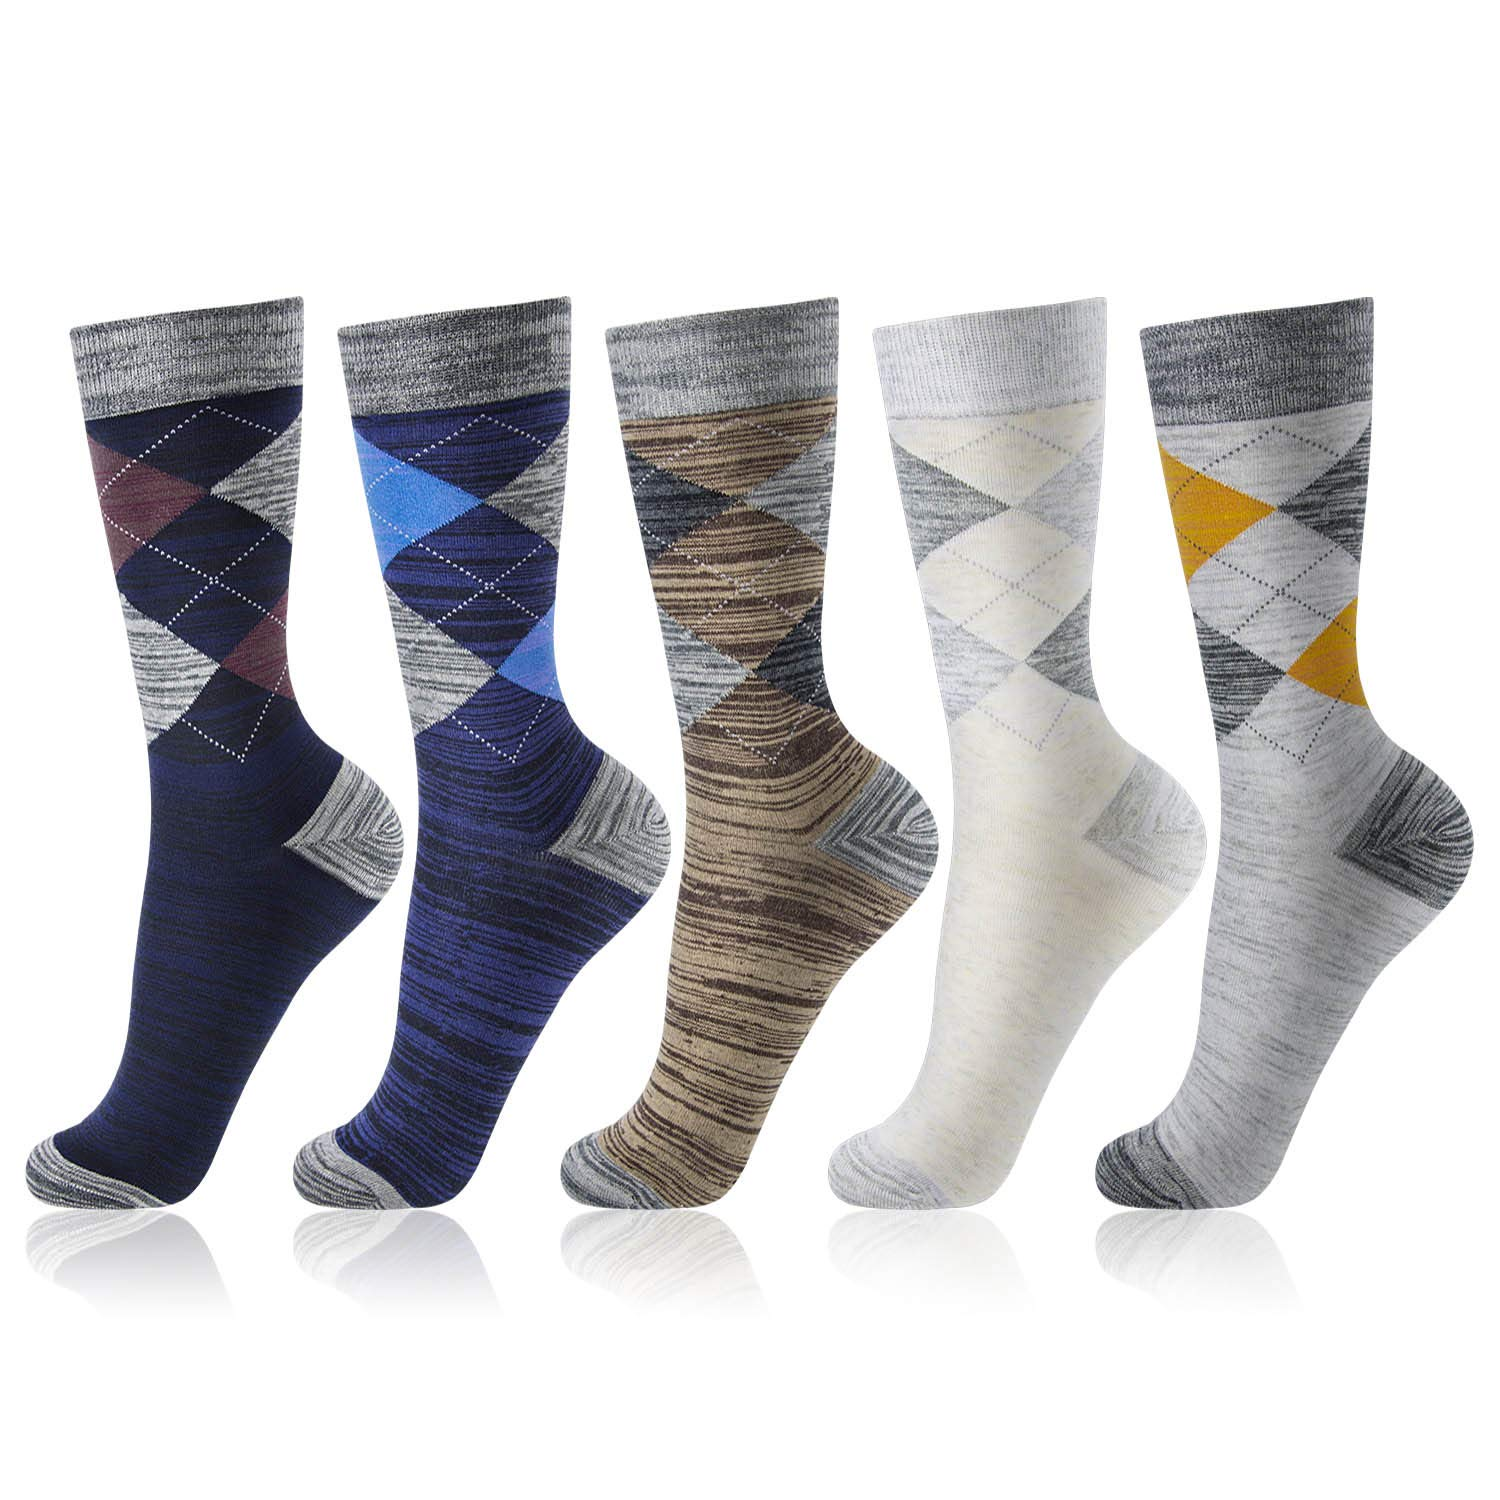 OKISS Men's Cotton Thermal Argyle Socks 5 Packs Colorful Pattened Casual Crew